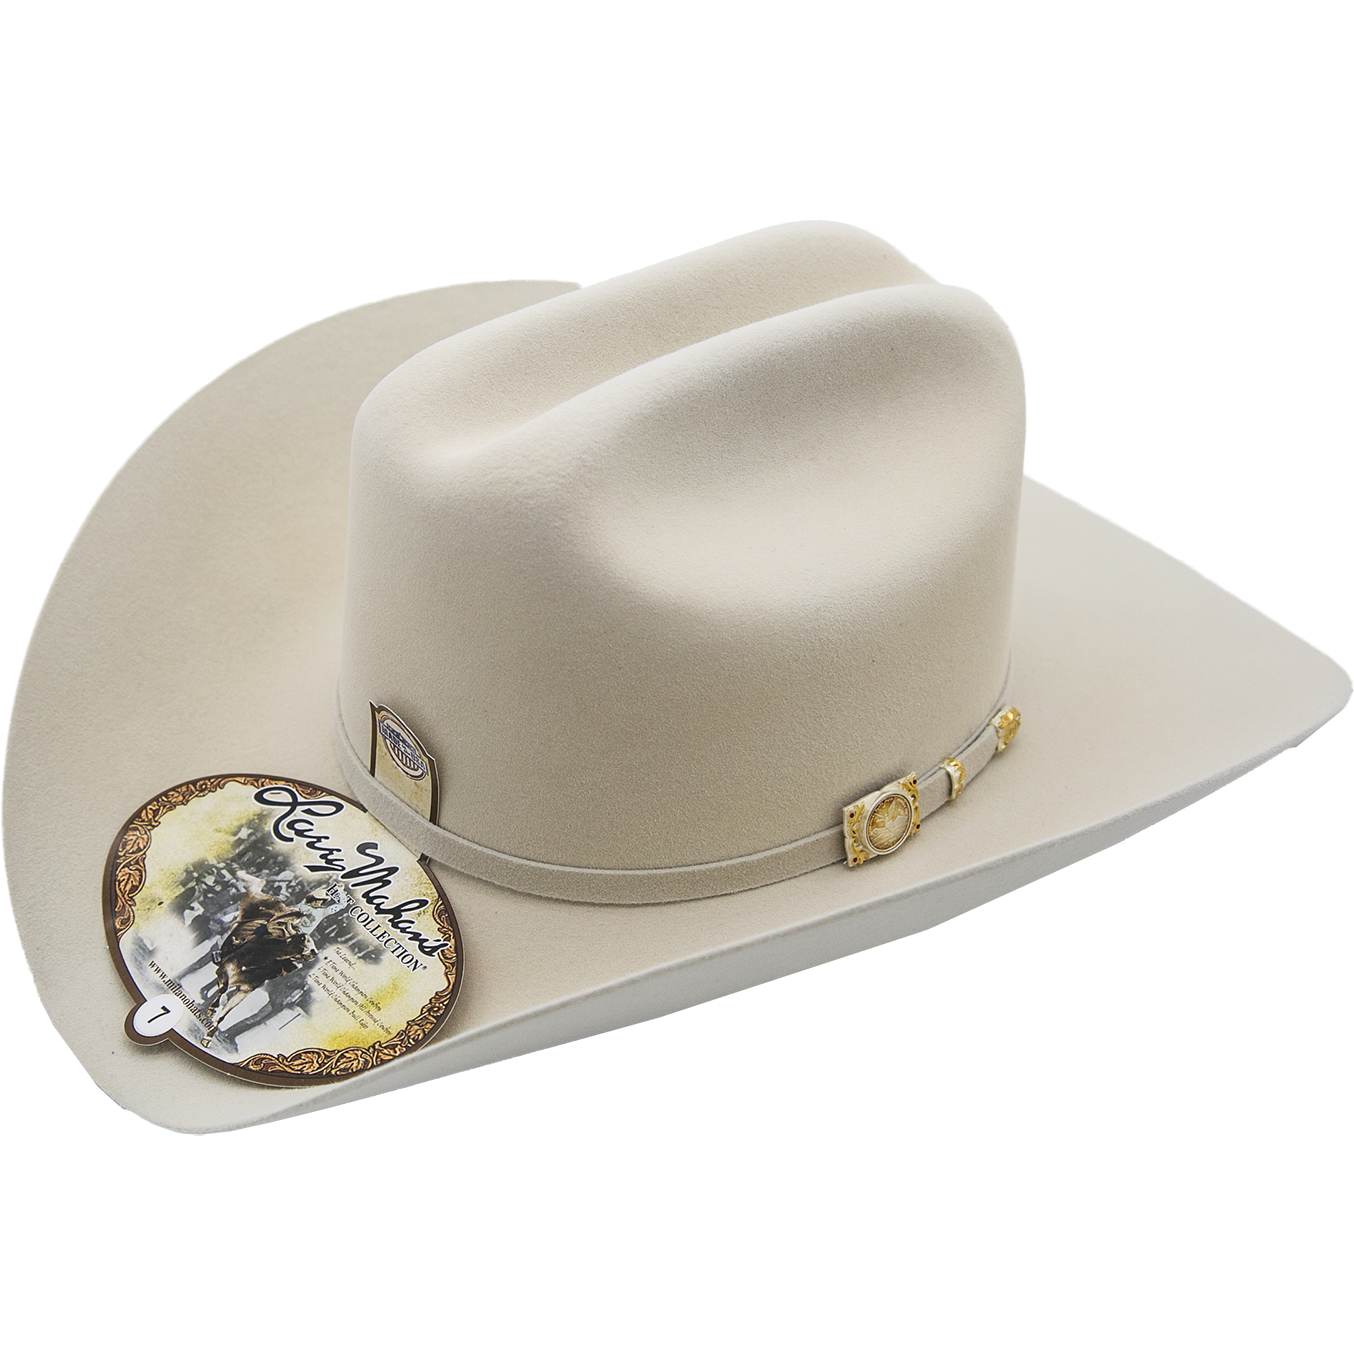 894a512dc18d5 100x Larry Mahan Independencia Fur Felt Cowboy Hat Silver Belly -  yeehawcowboy